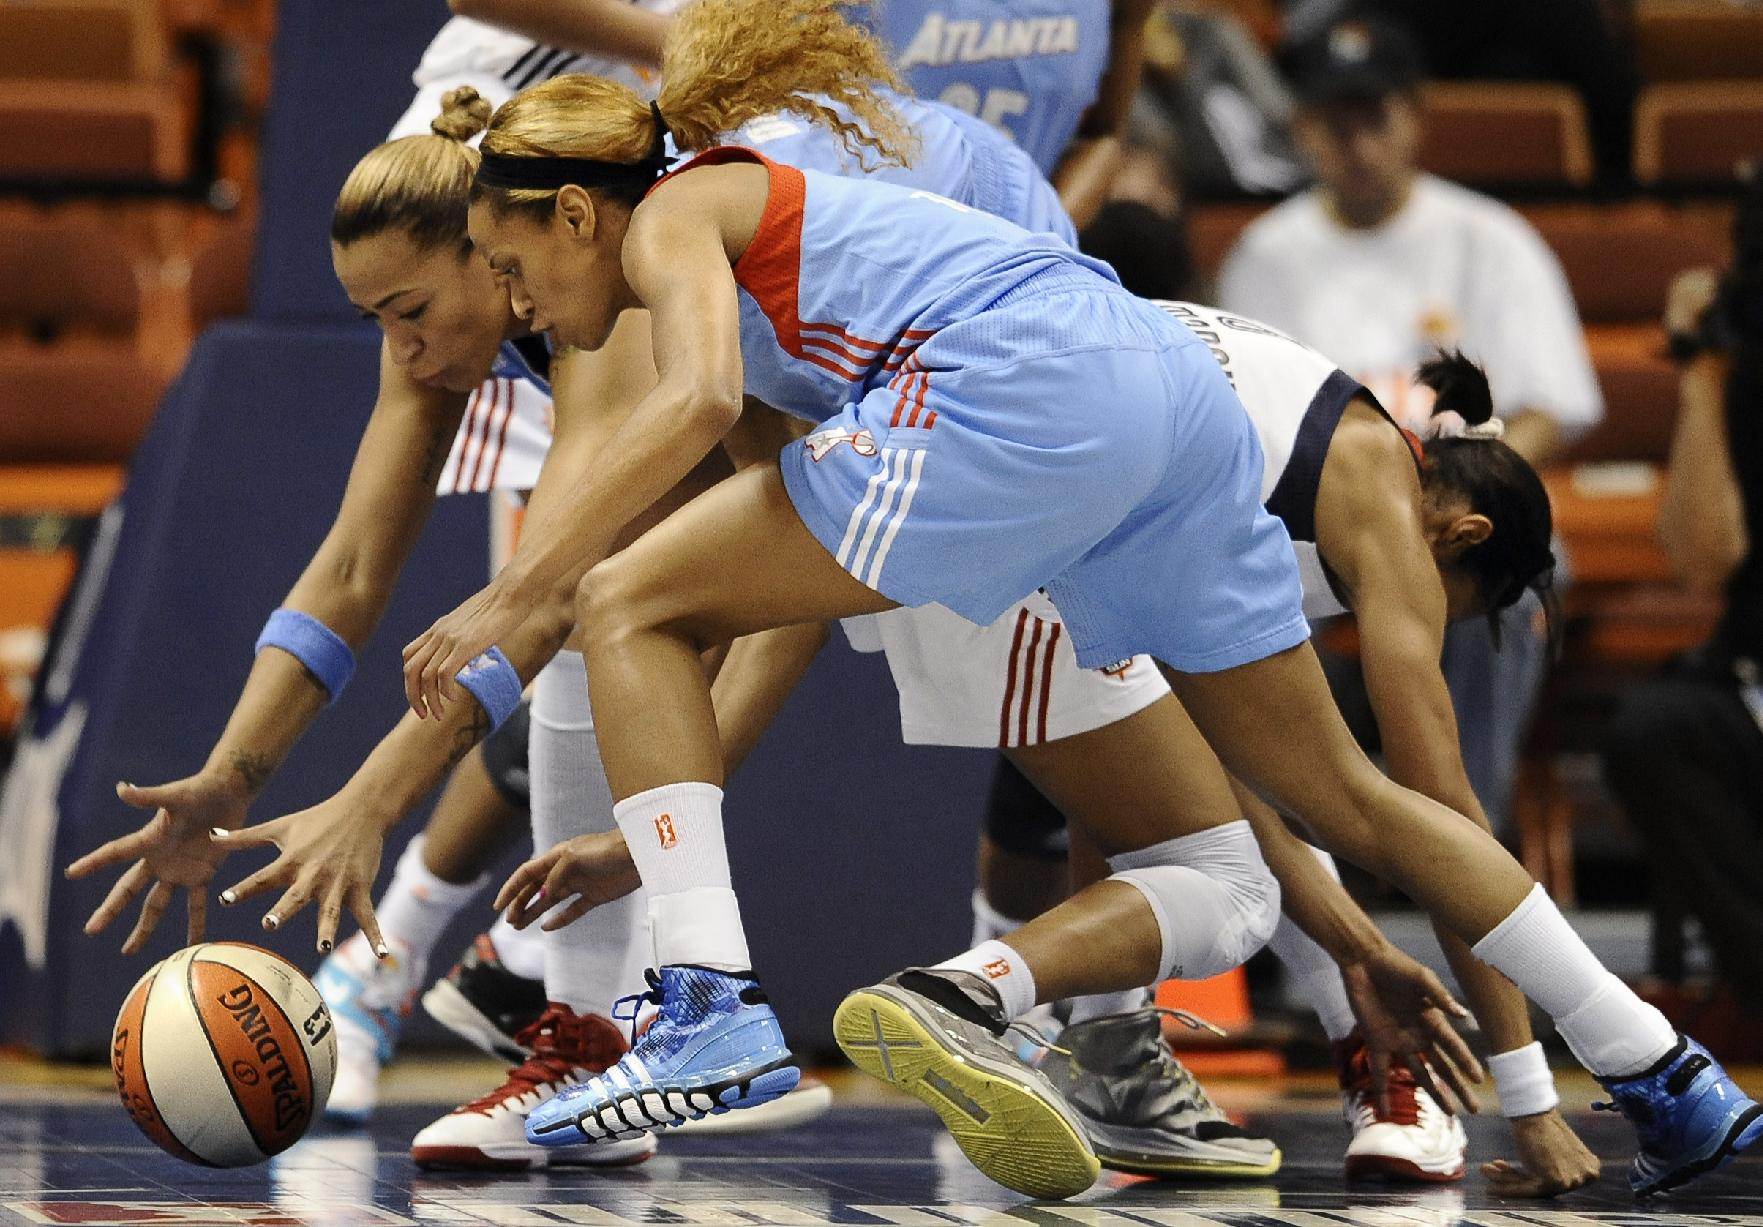 Atlanta Dream's Erika de Souza, left, and Jasmine Thomas, center, chase a loose ball as Connecticut Sun's Iziane Castro Marques right, falls to the court during the first half of a WNBA basketball game in Uncasville, Conn., Wednesday, Sept. 11, 2013